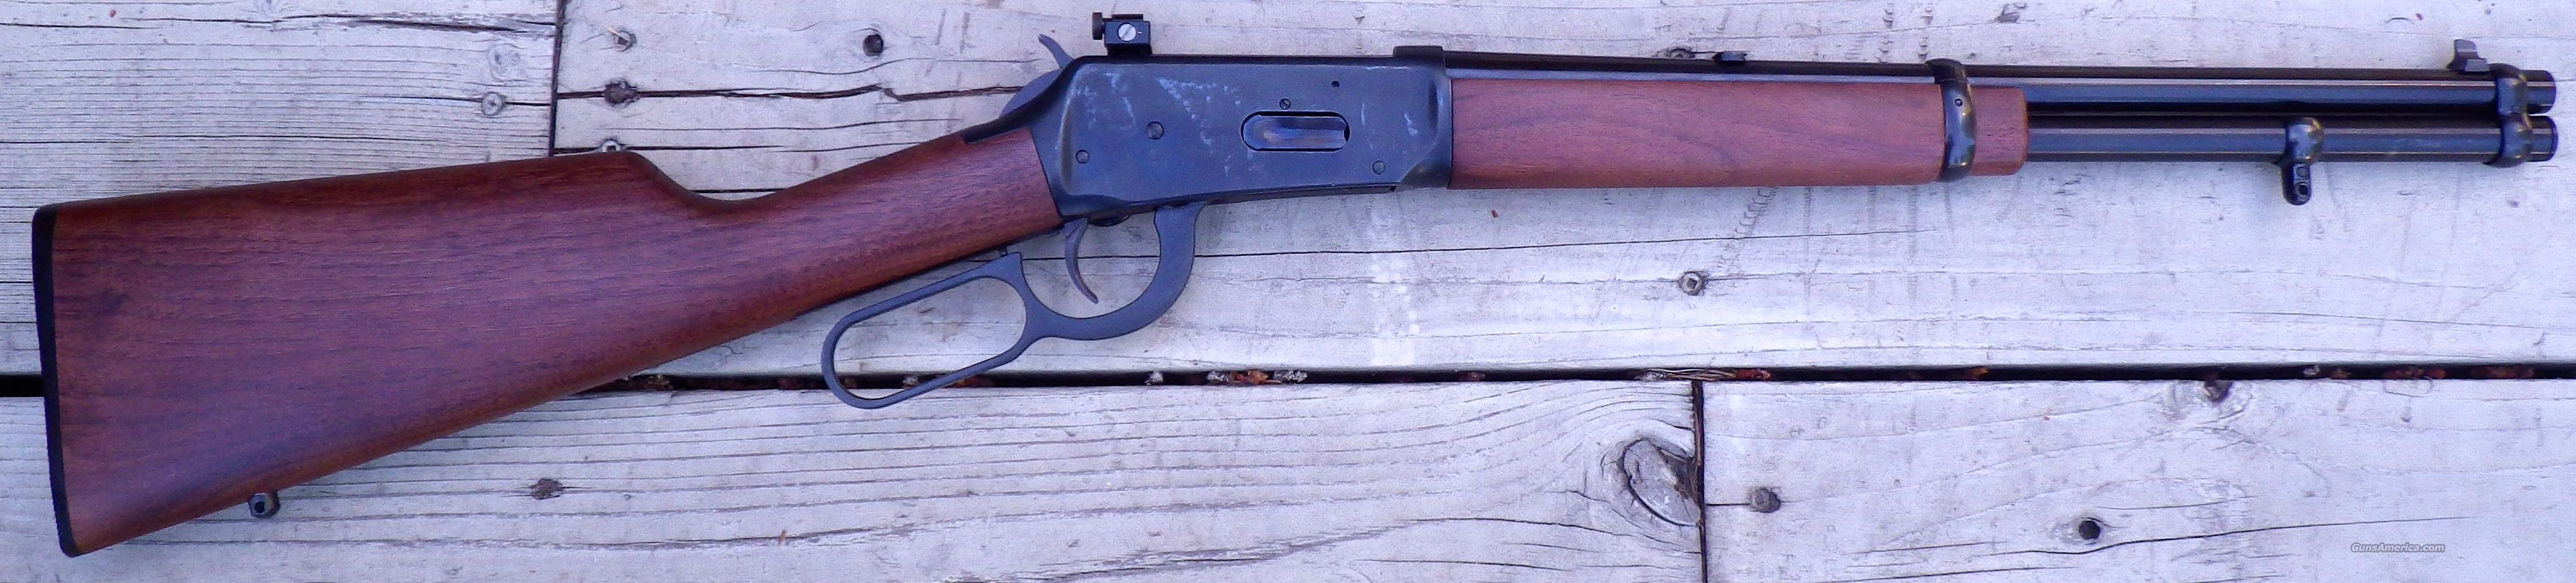 Model 94 Trapper 30-30, top eject, saddle ring  Guns > Rifles > Winchester Rifles - Modern Lever > Model 94 > Post-64